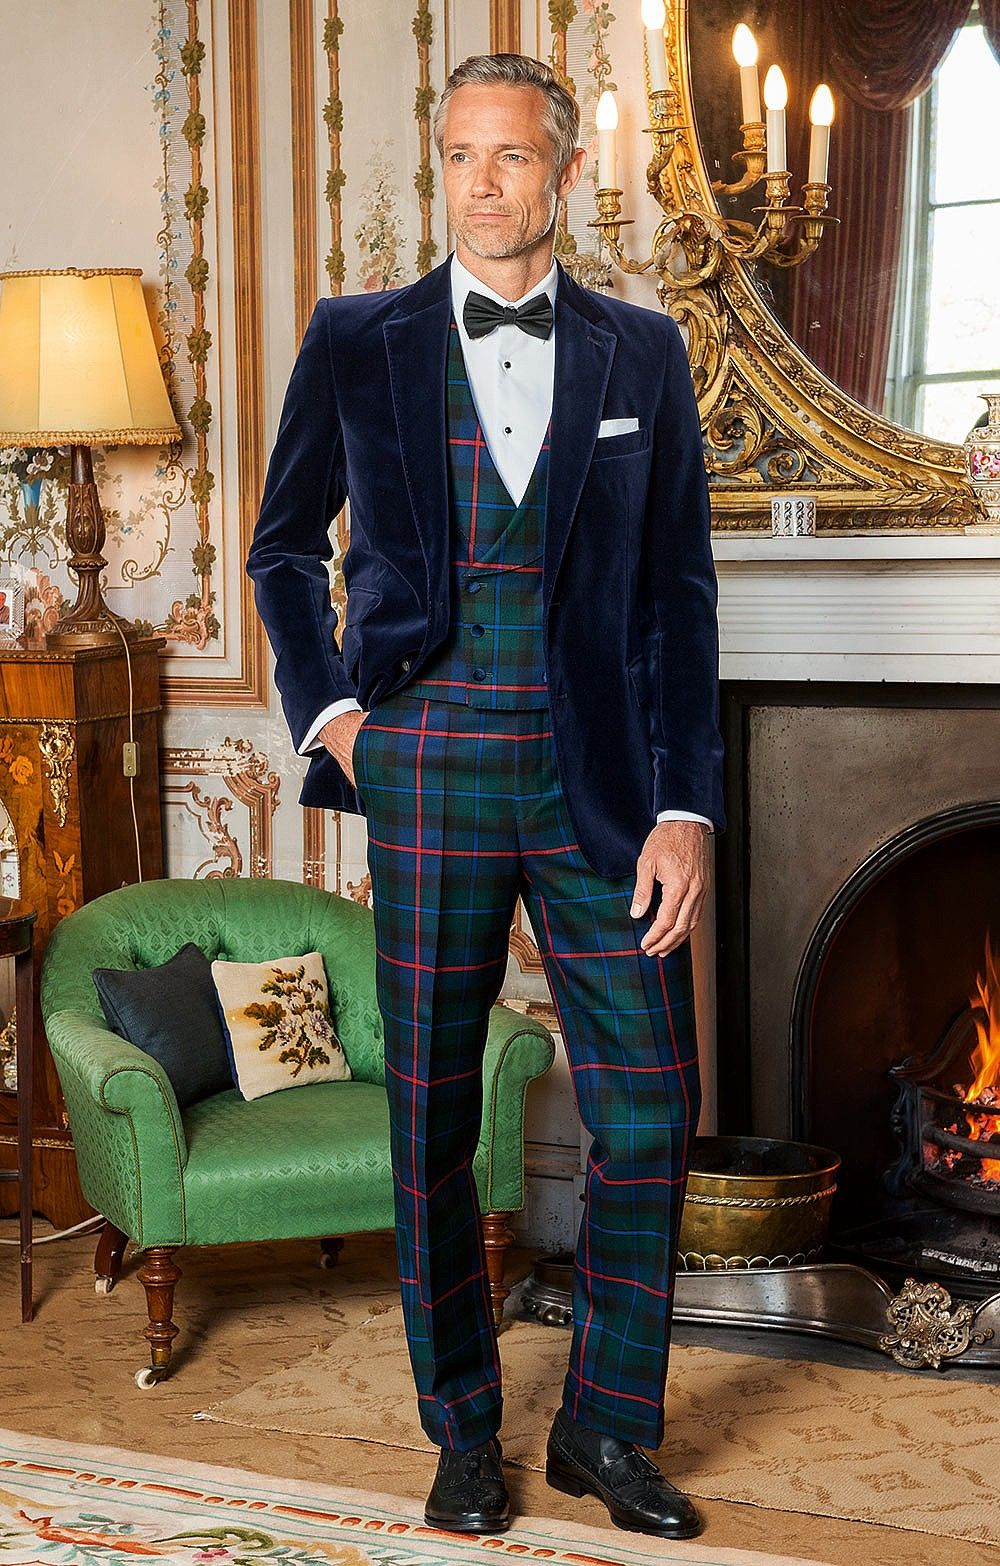 Plaid Trousers In 2019 Tuxedos Tartan Men Fashion Cool Suits